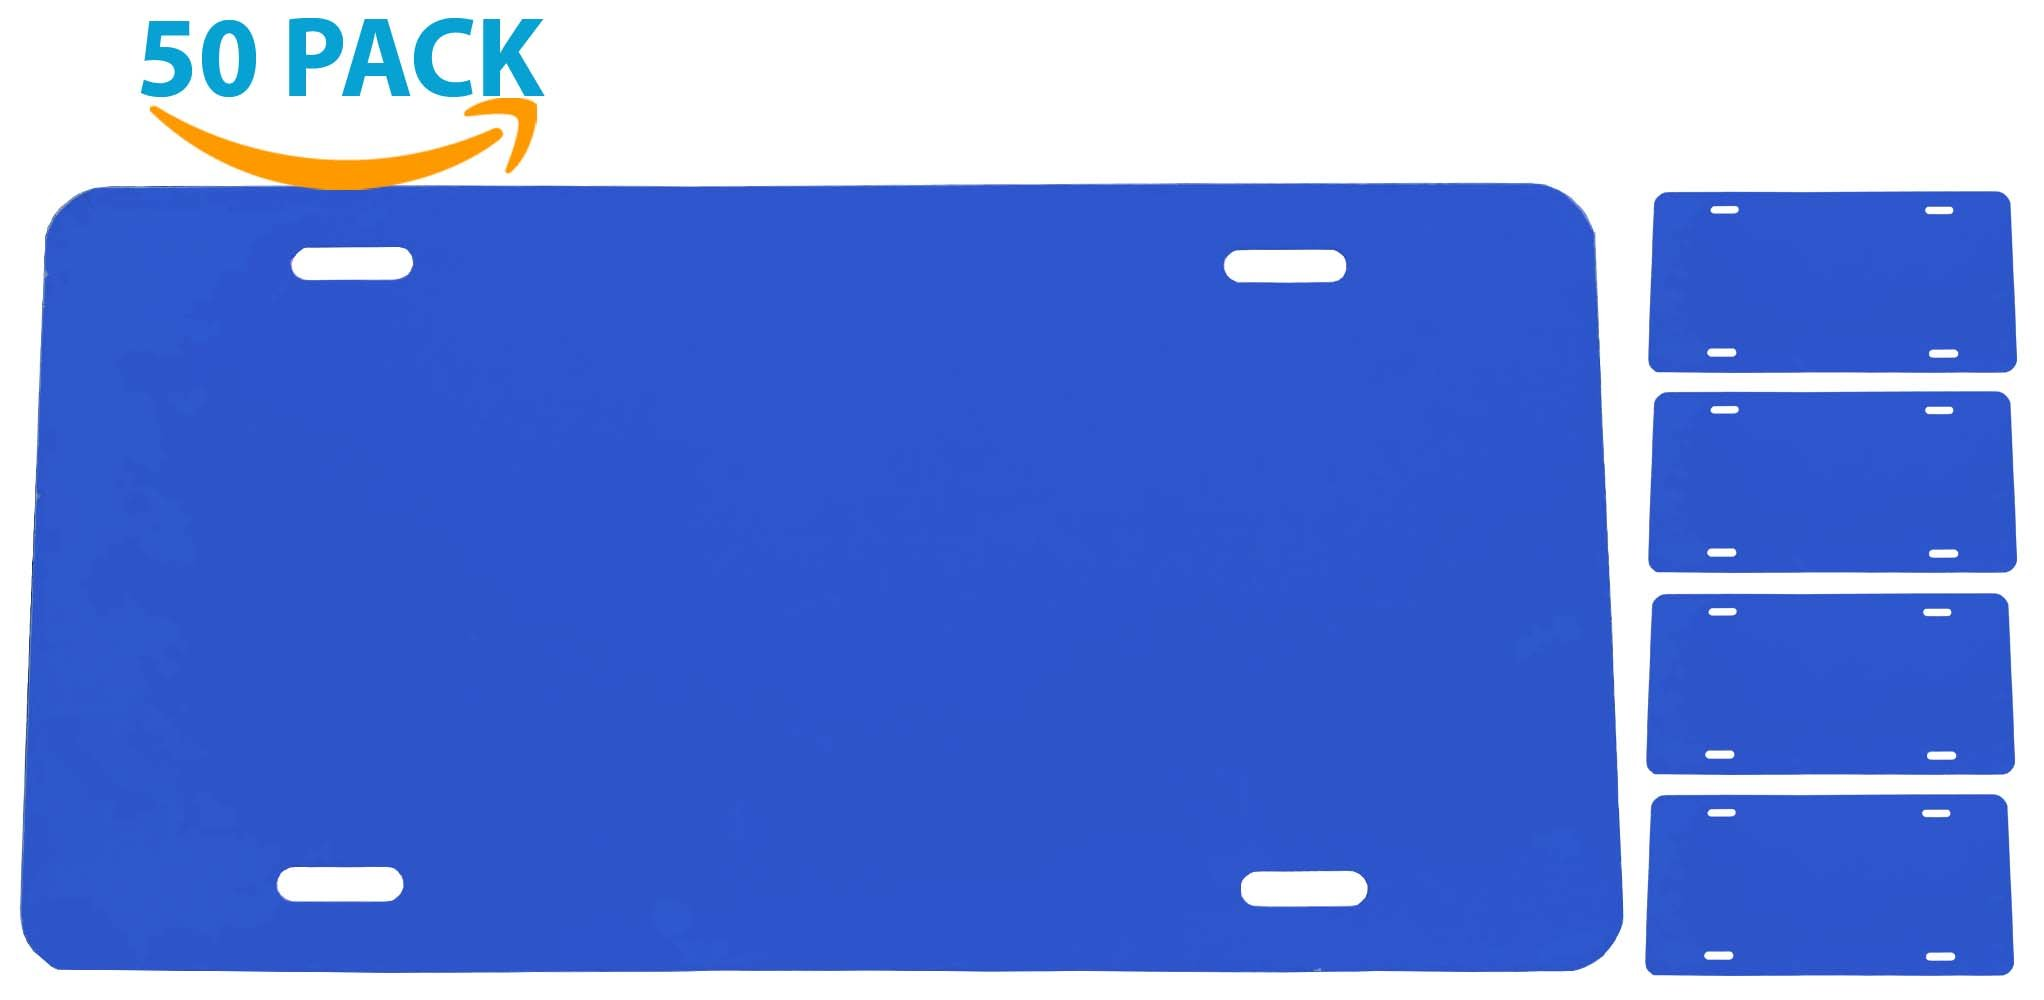 CHEVRON BLUE [50-PACK] License Plate Blank - Aluminum - 0.040 Thickness/1mm - Standard US/Canada Size 12x6